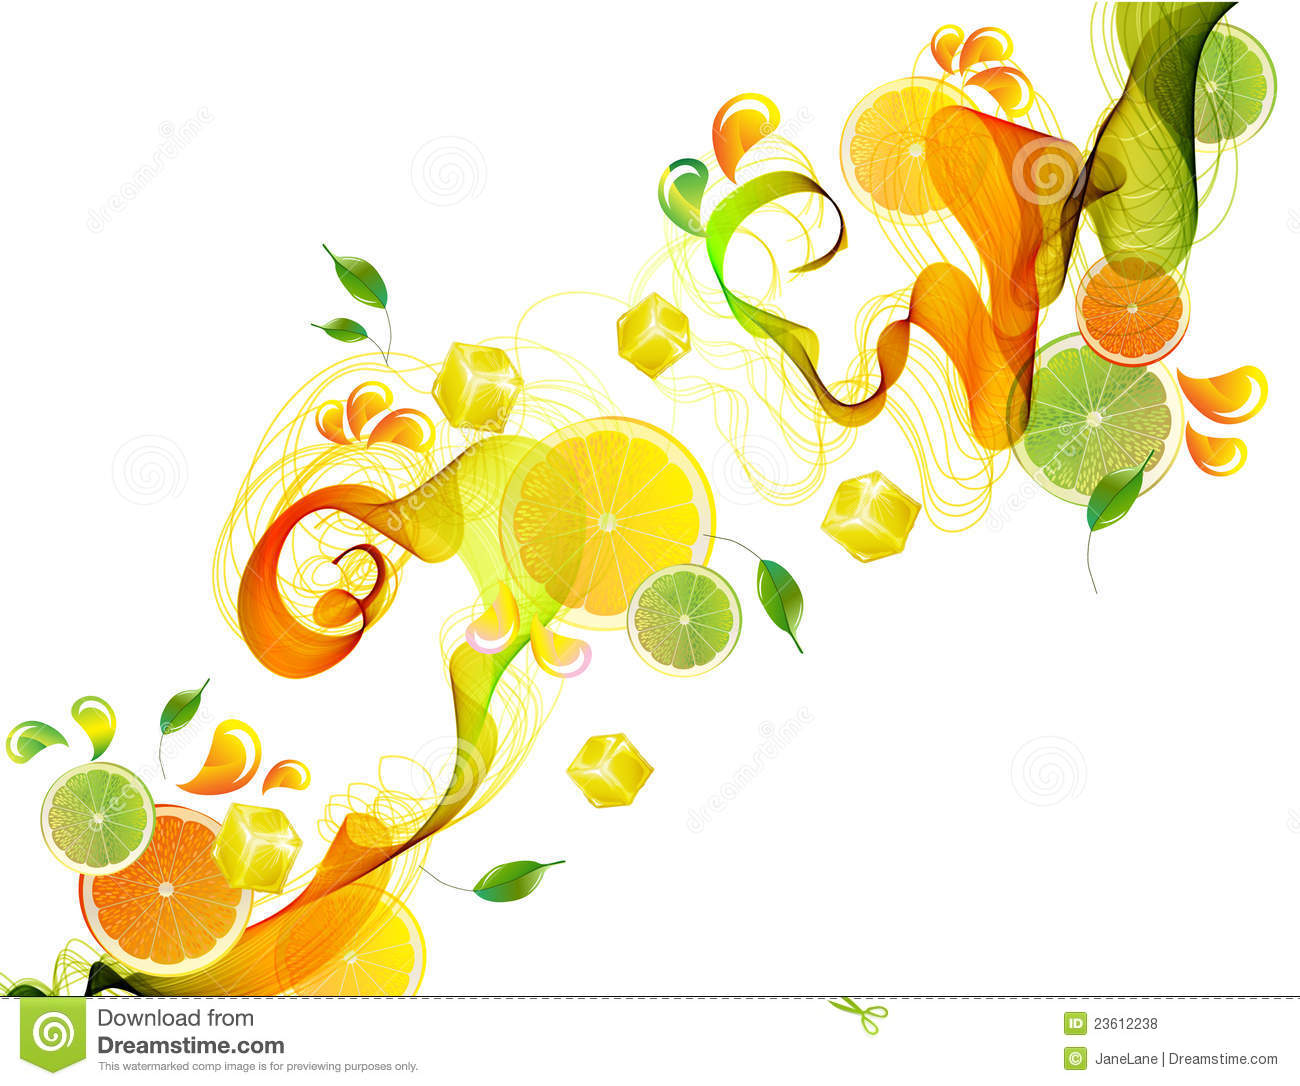 Tree With Leaves Falling Wallpaper Orange And Lime Juice Splash With Abstract Wave Stock